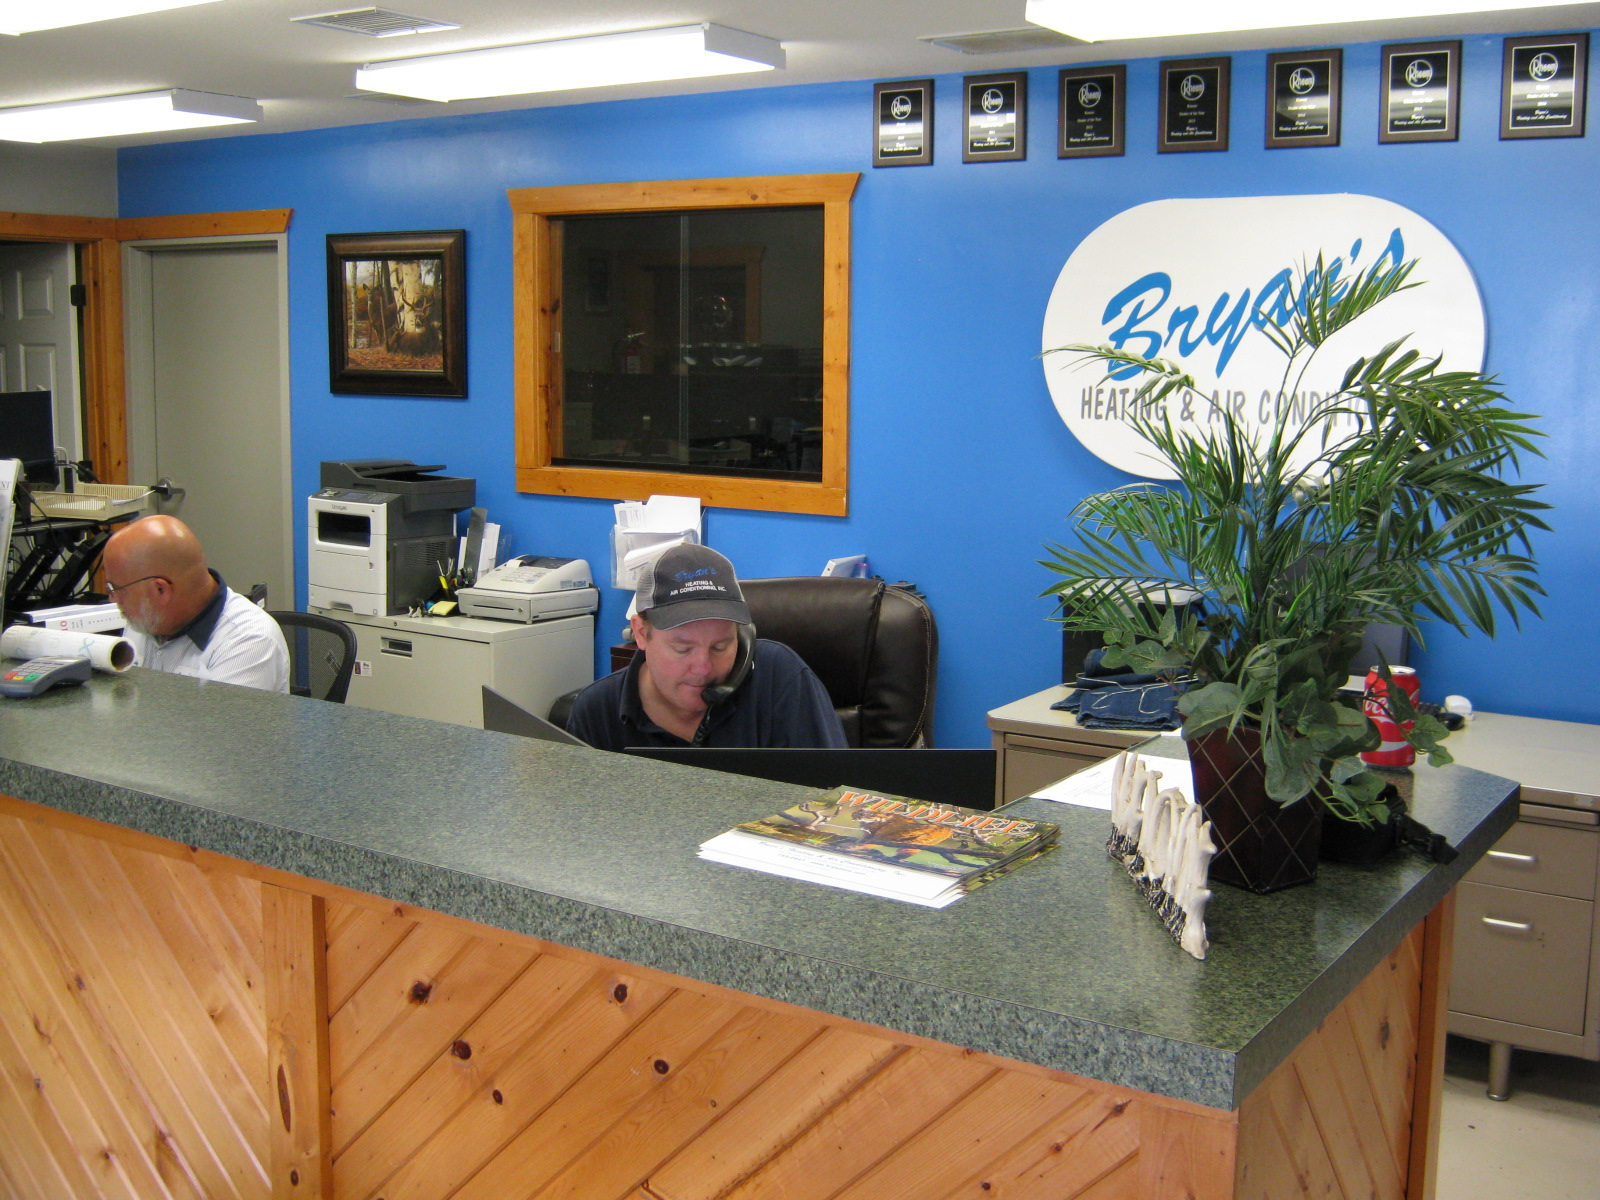 Bryan's Heating & Air Conditioning, Inc. image 4